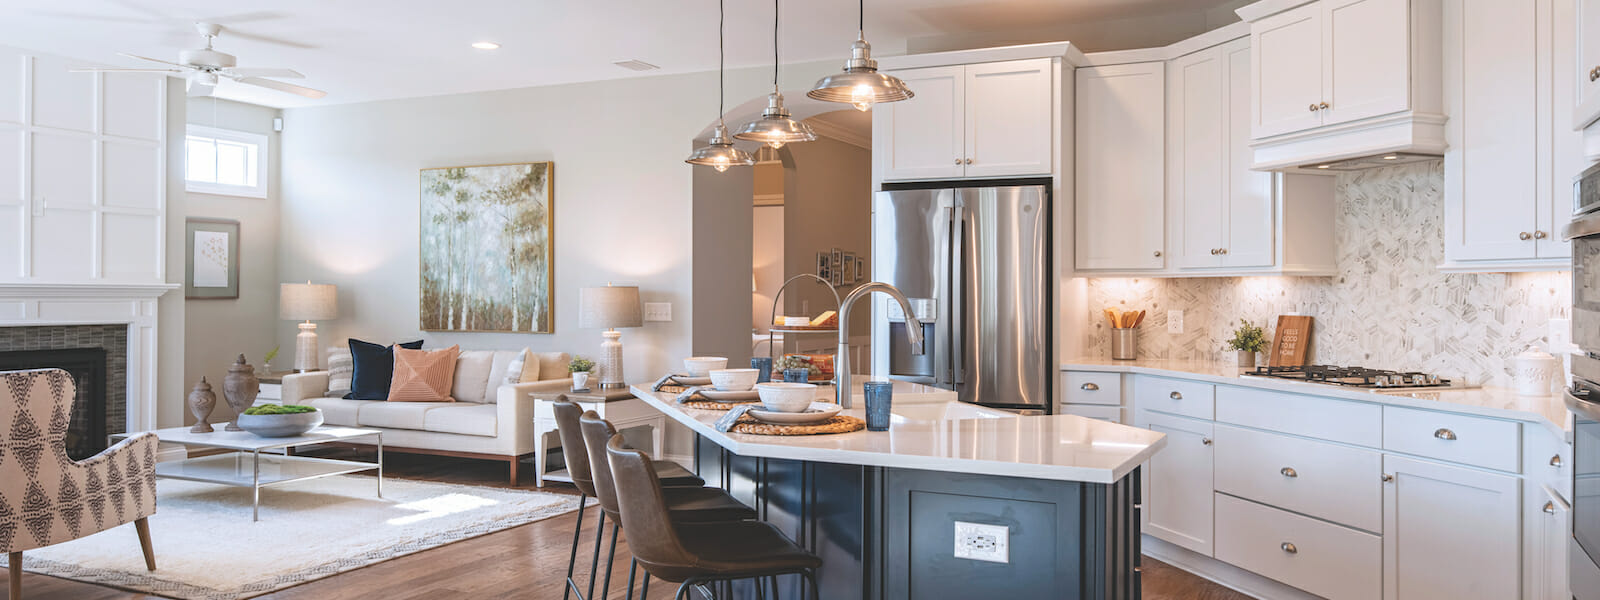 55+ Homes near Charlotte NC | The Courtyards at Eastfield Farm